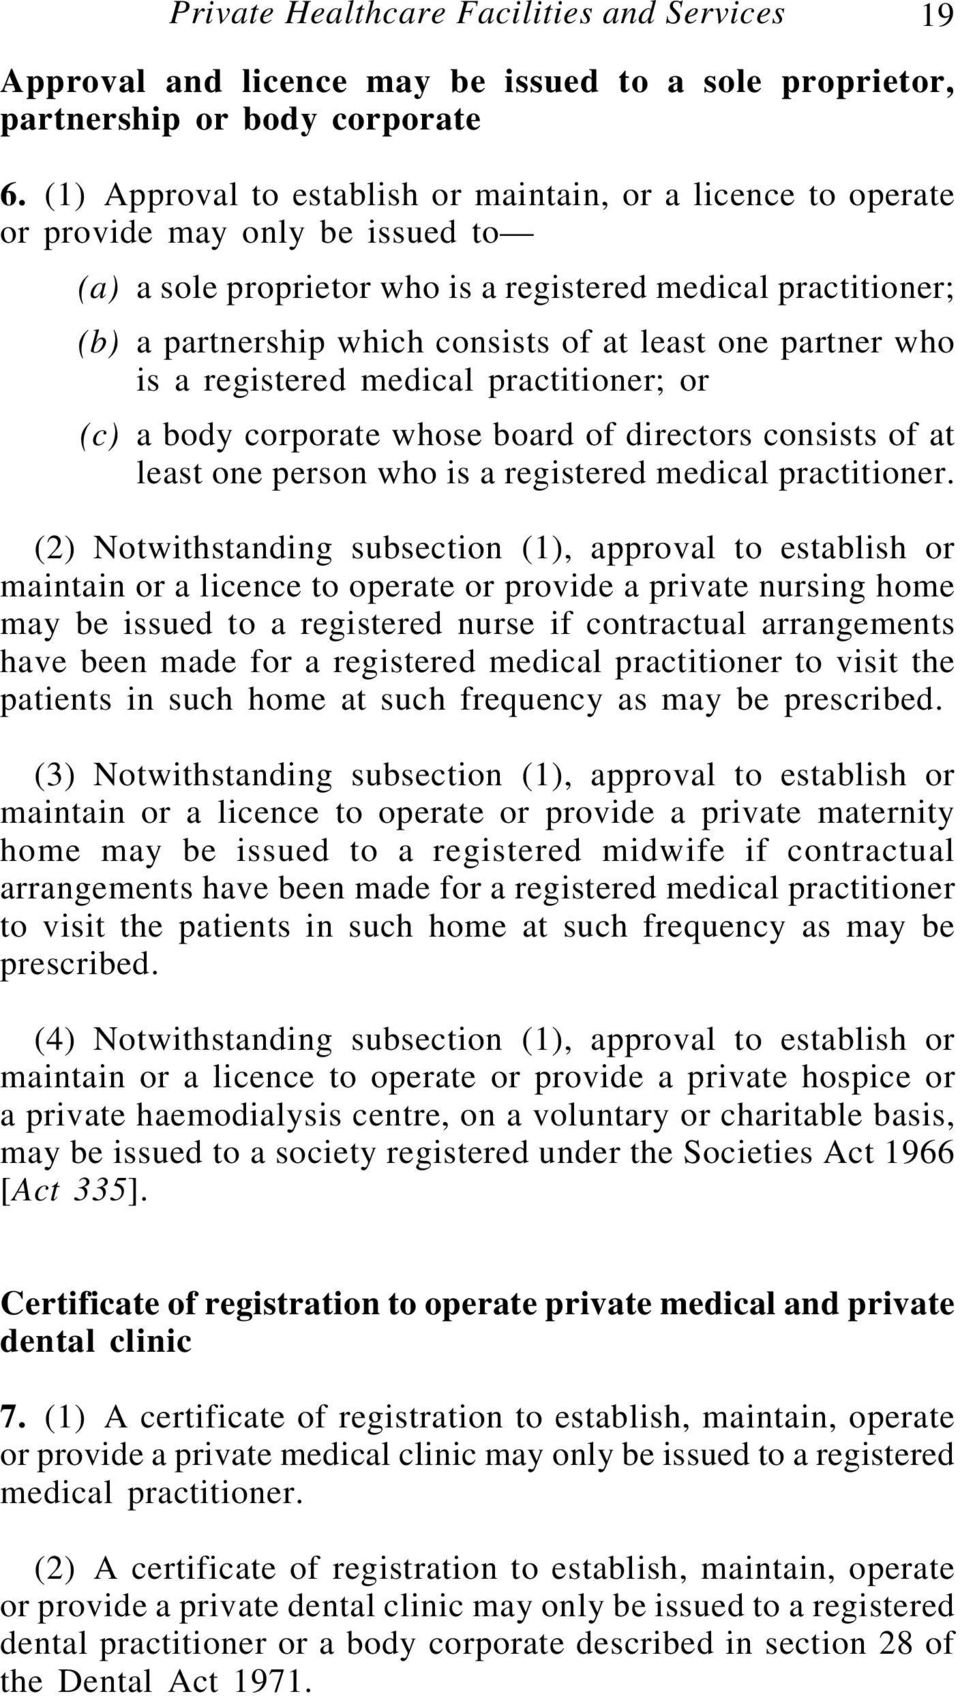 least one partner who is a registered medical practitioner; or (c) a body corporate whose board of directors consists of at least one person who is a registered medical practitioner.